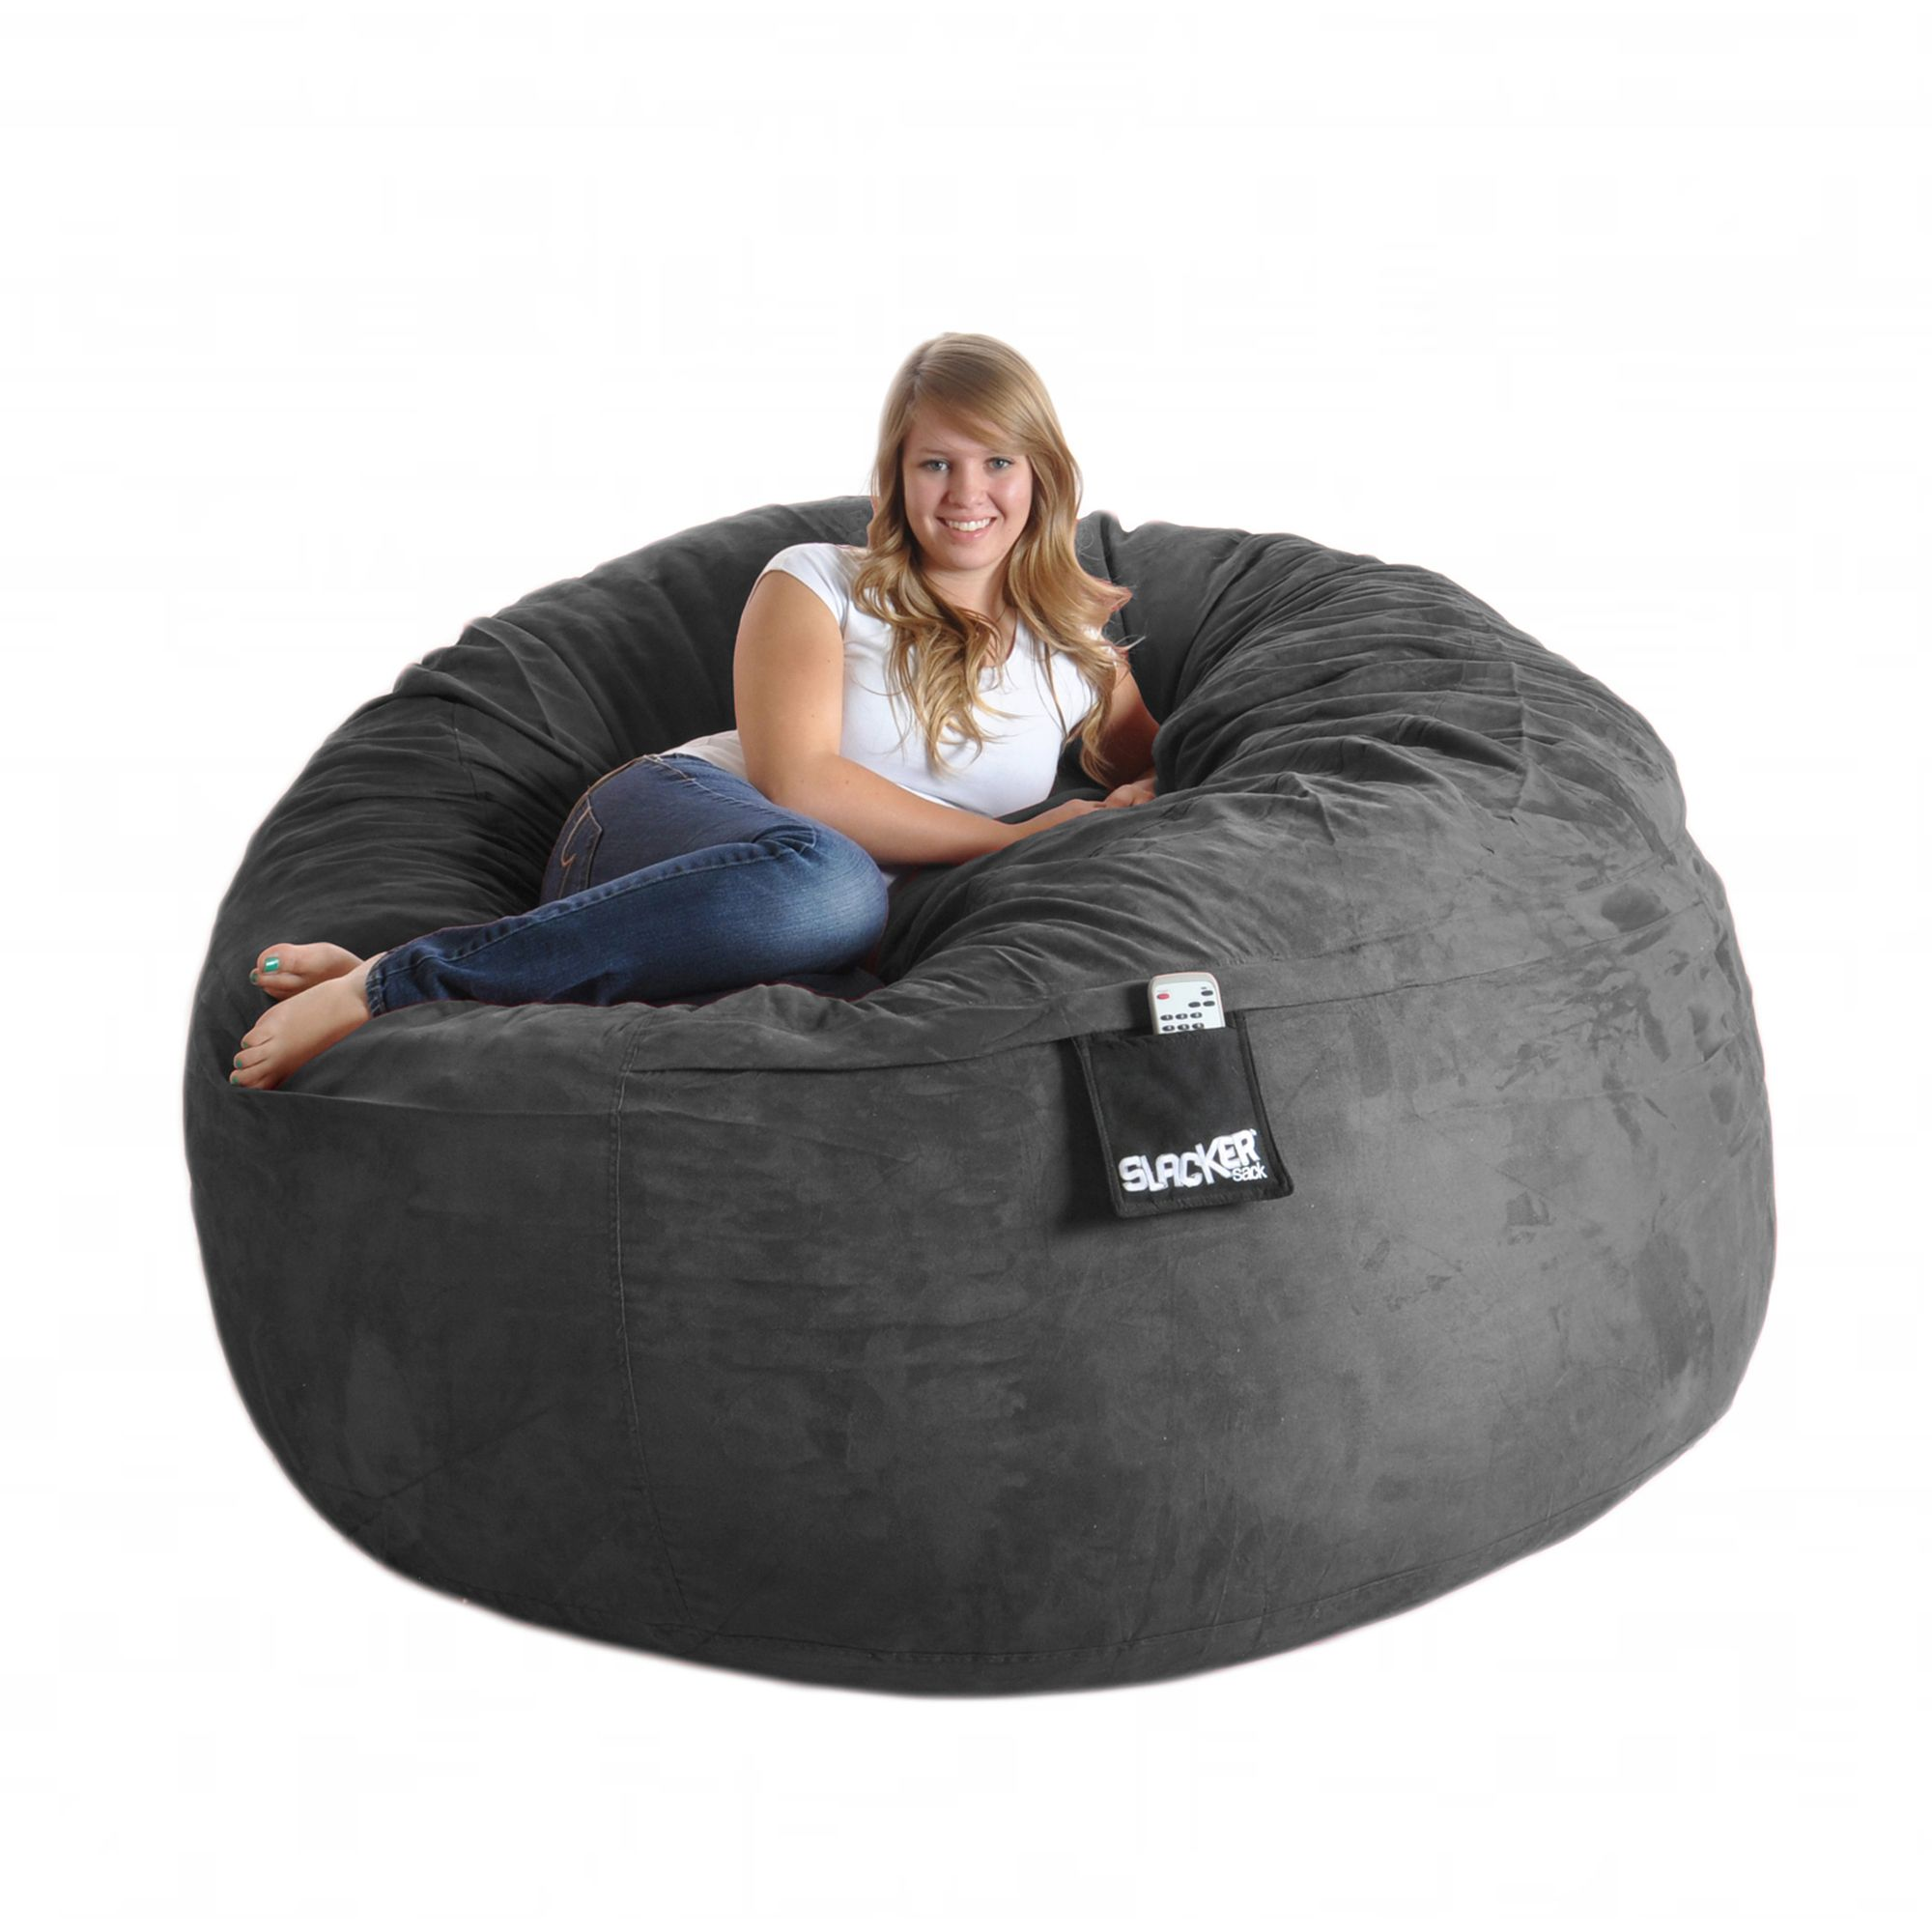 Curl up in fort or lie back for a nap on this grey microfiber and